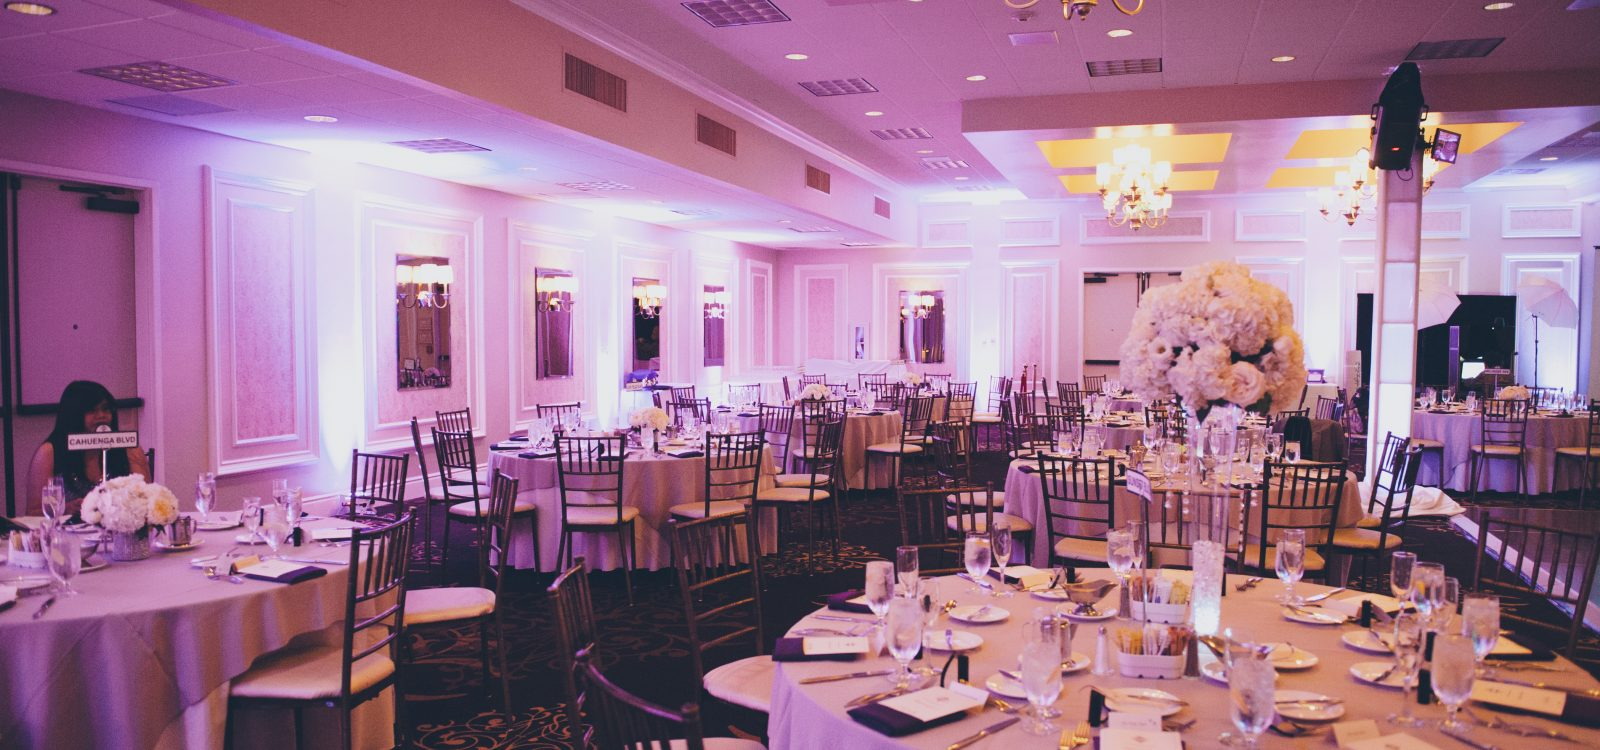 wedding banquet services available at The Garland Hotel in North Hollywood